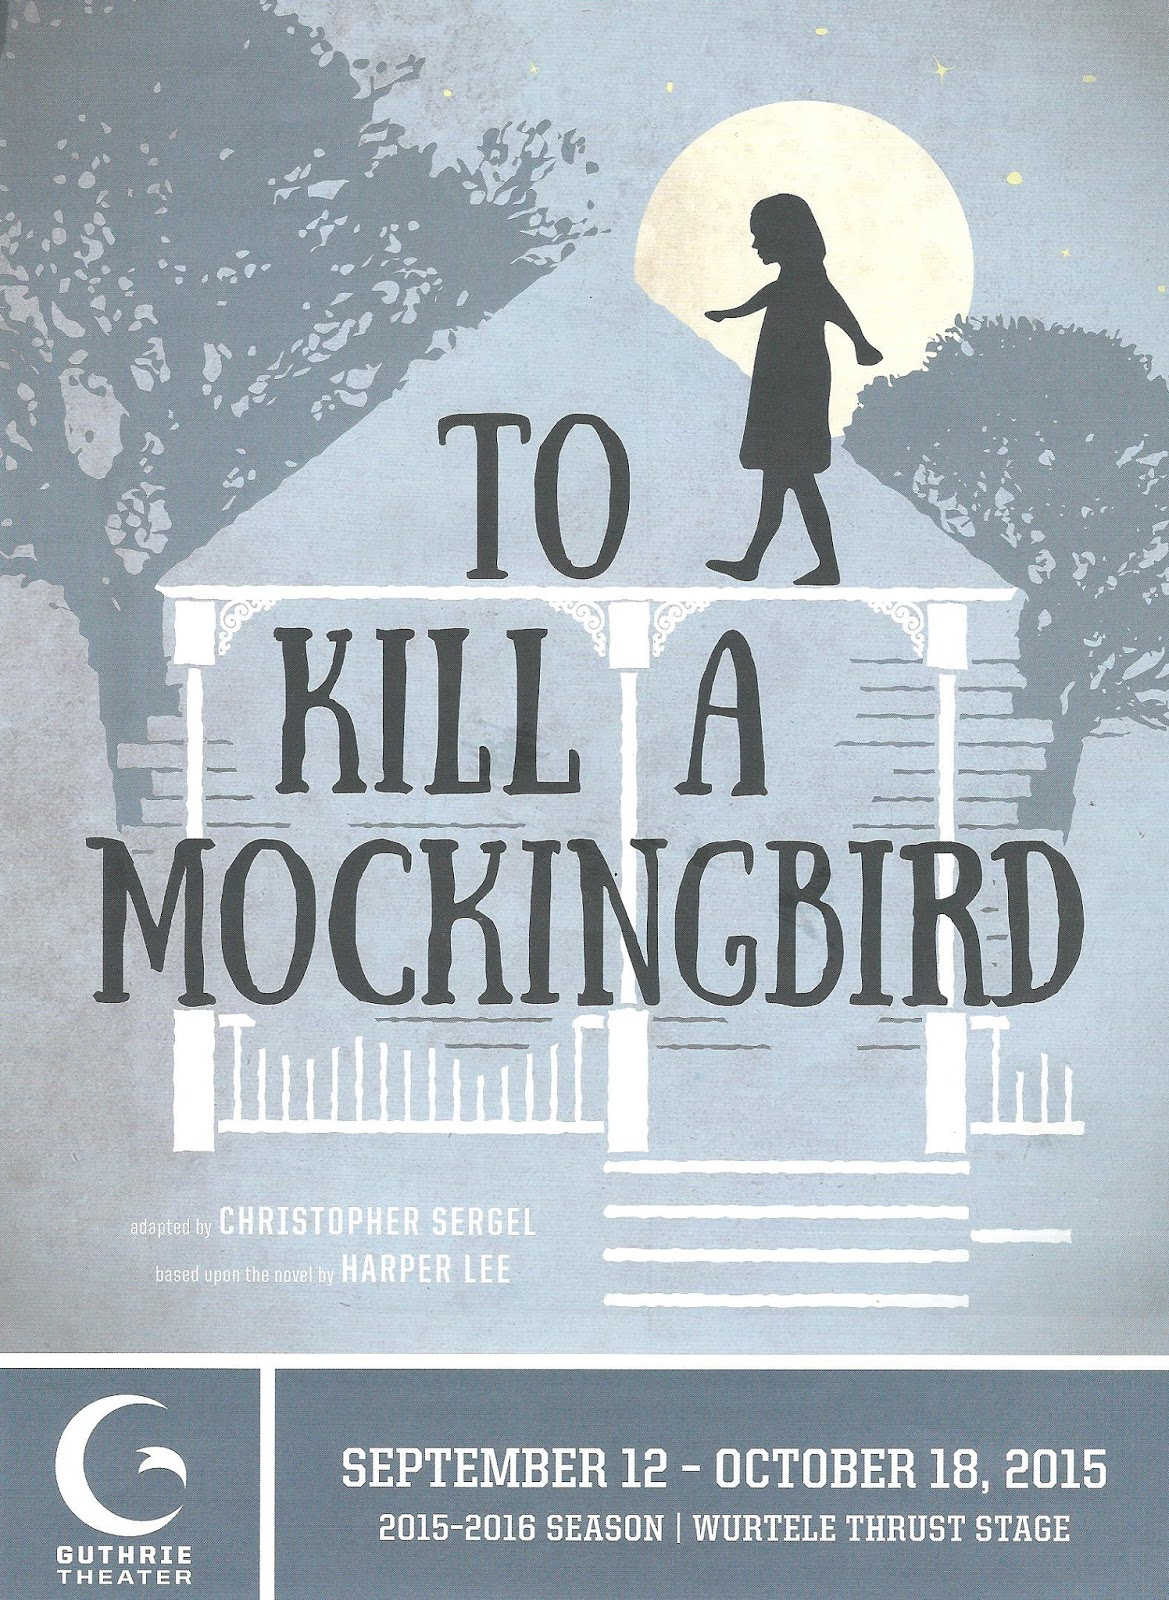 the theme of maturity in the book to kill a mocking bird by harper lee Free essay: the loss of innocence and maturity in to kill a mockingbird harper lee's pulitzer prize-winning novel, to kill a mockingbird details the life and.